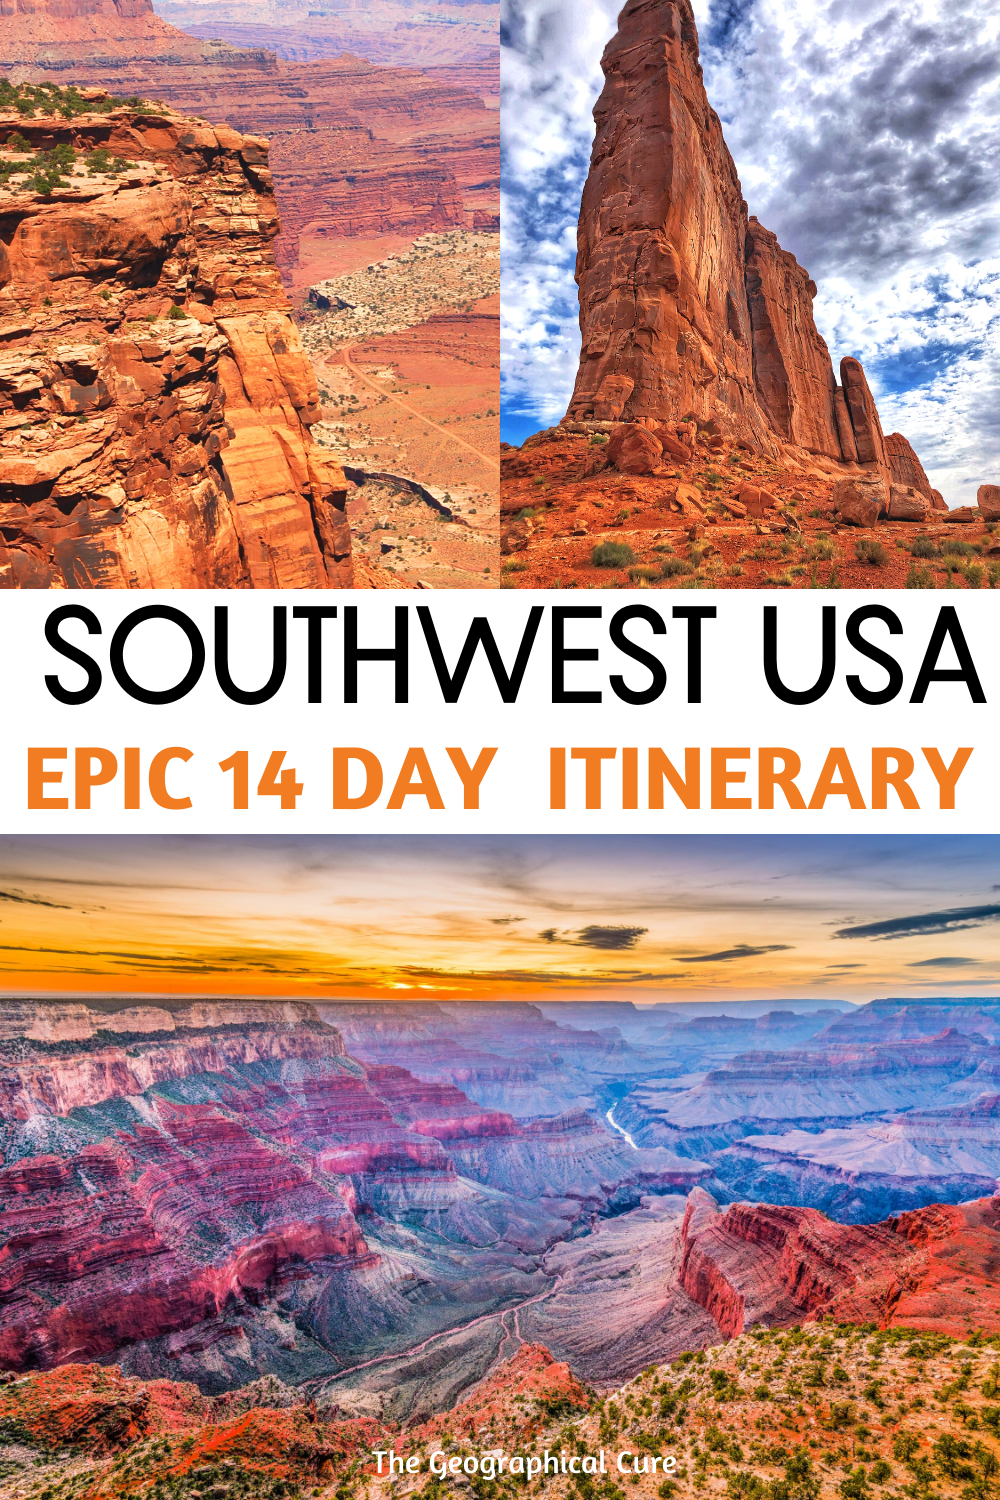 Epic 14 Day Itinerary for the American Southwest